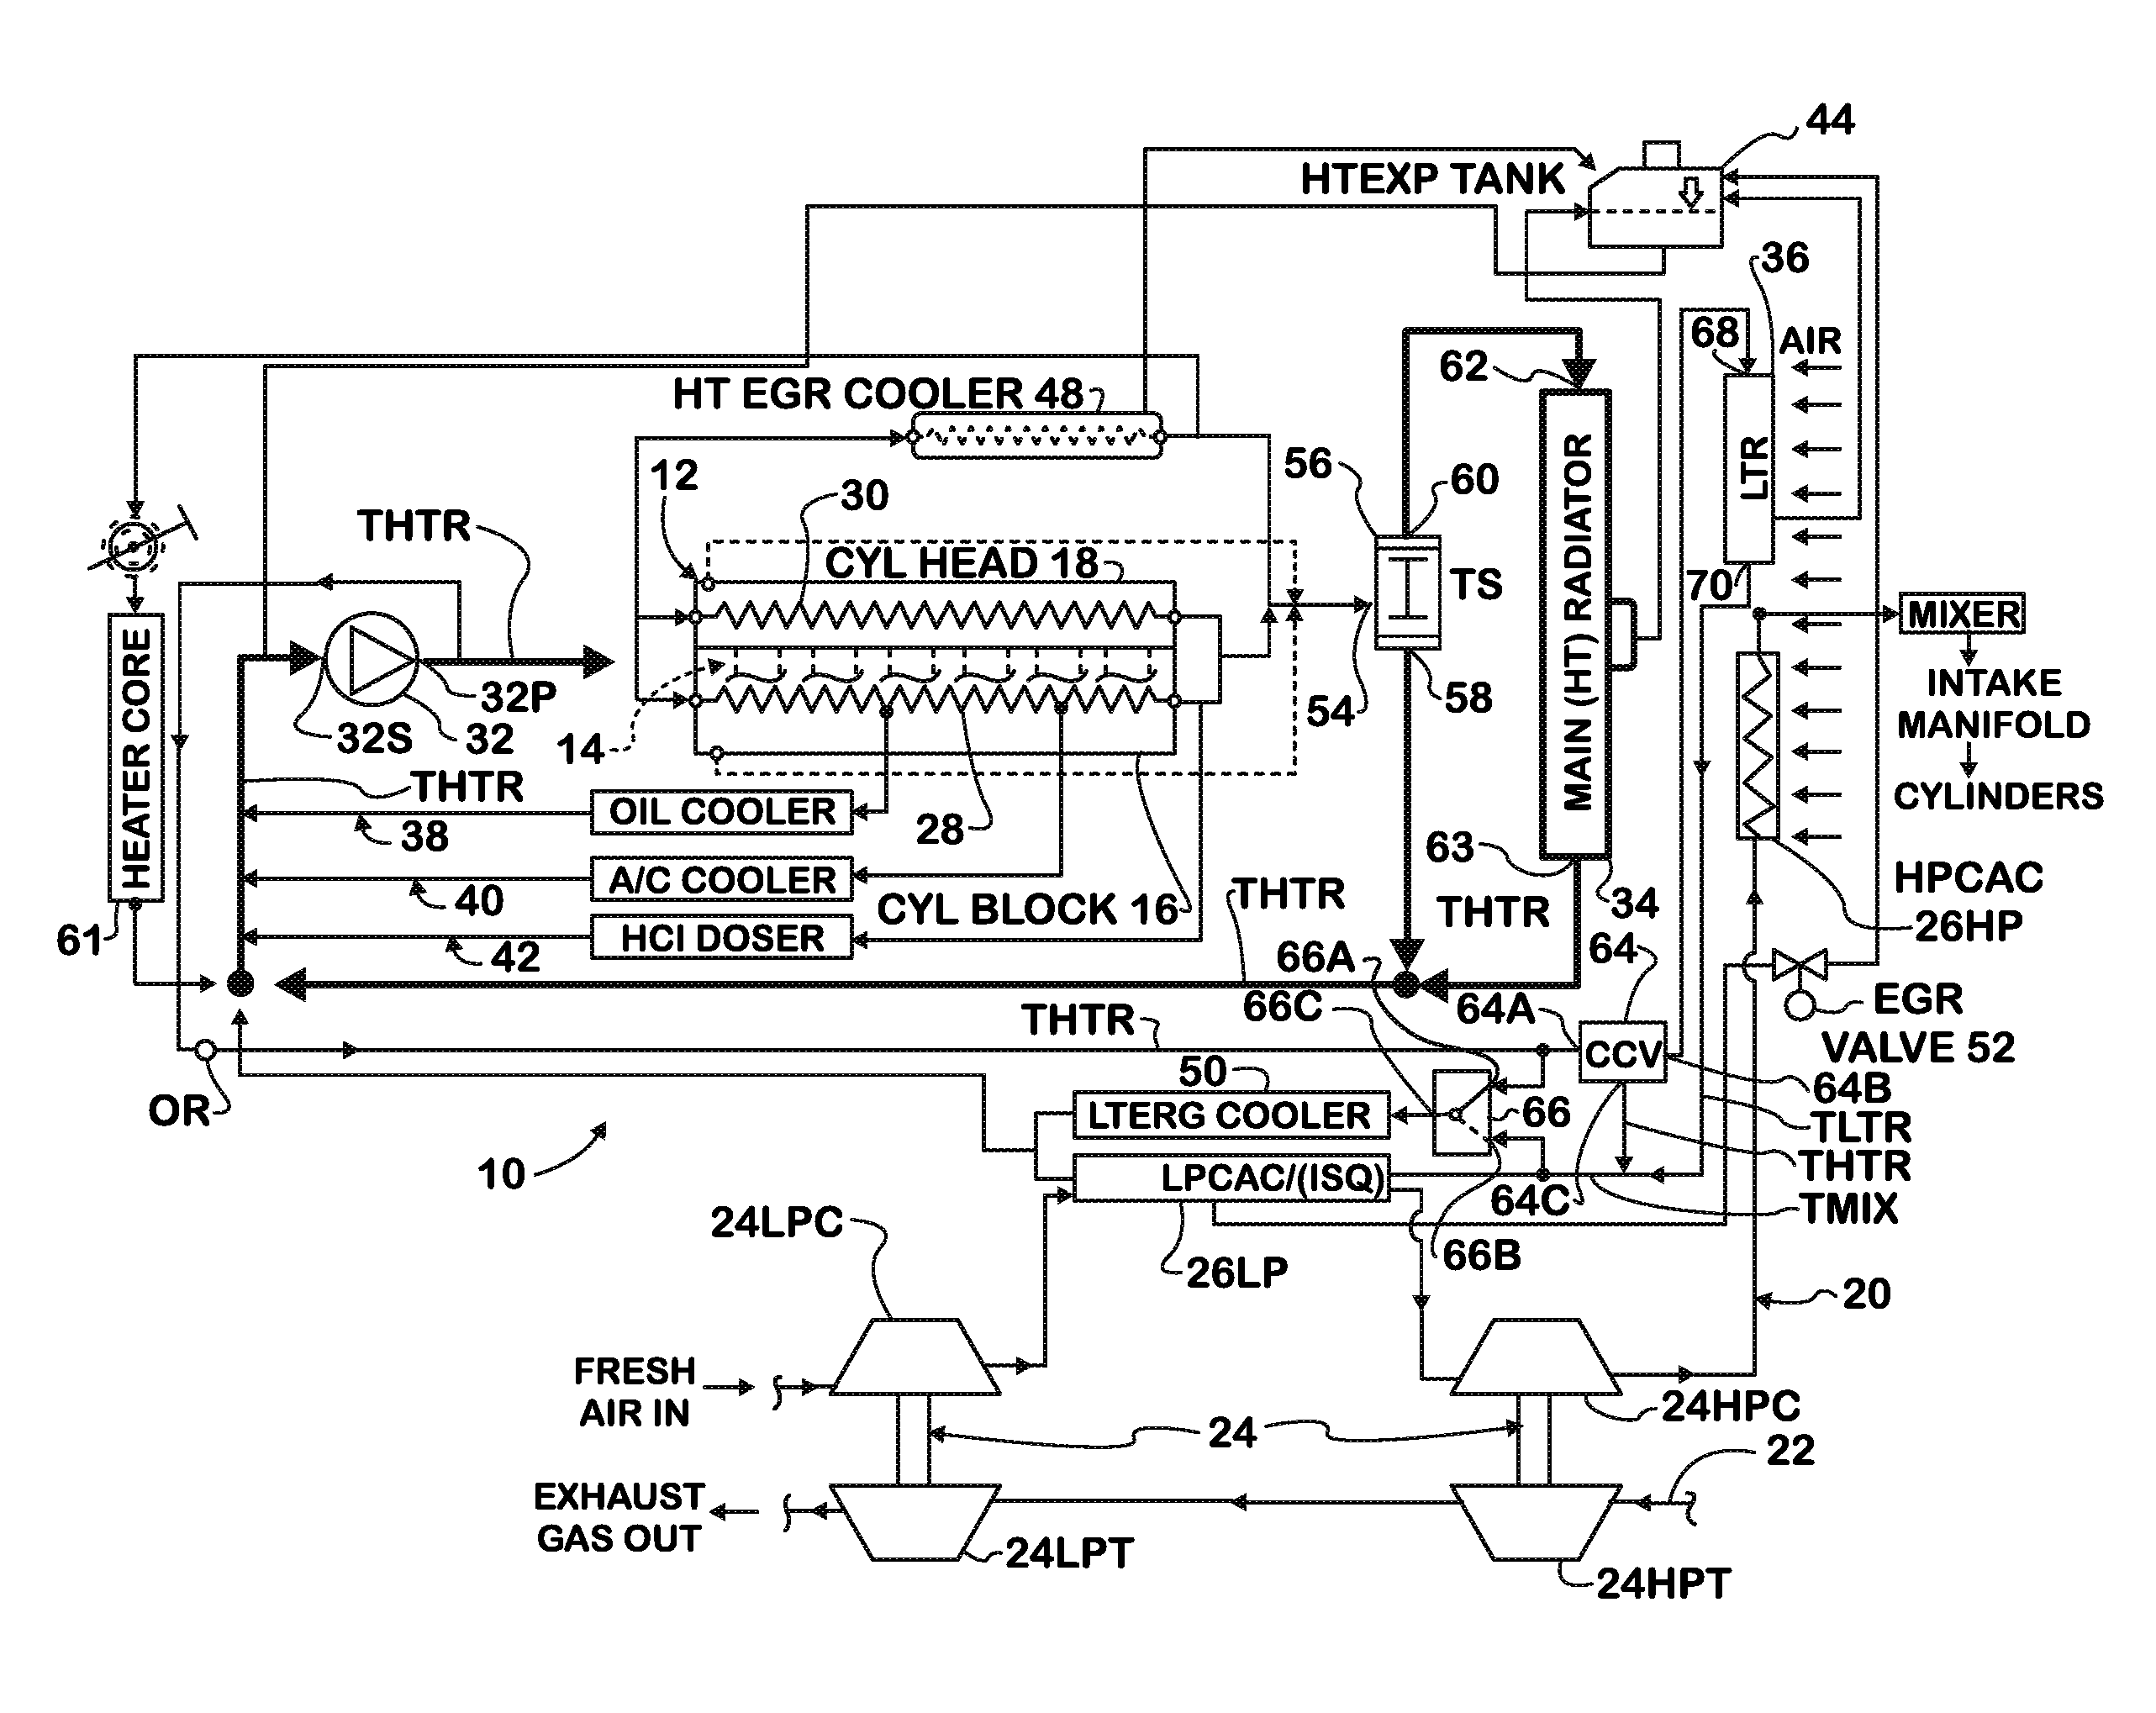 Patent Us8146542 - Adaptive Egr Cooling System